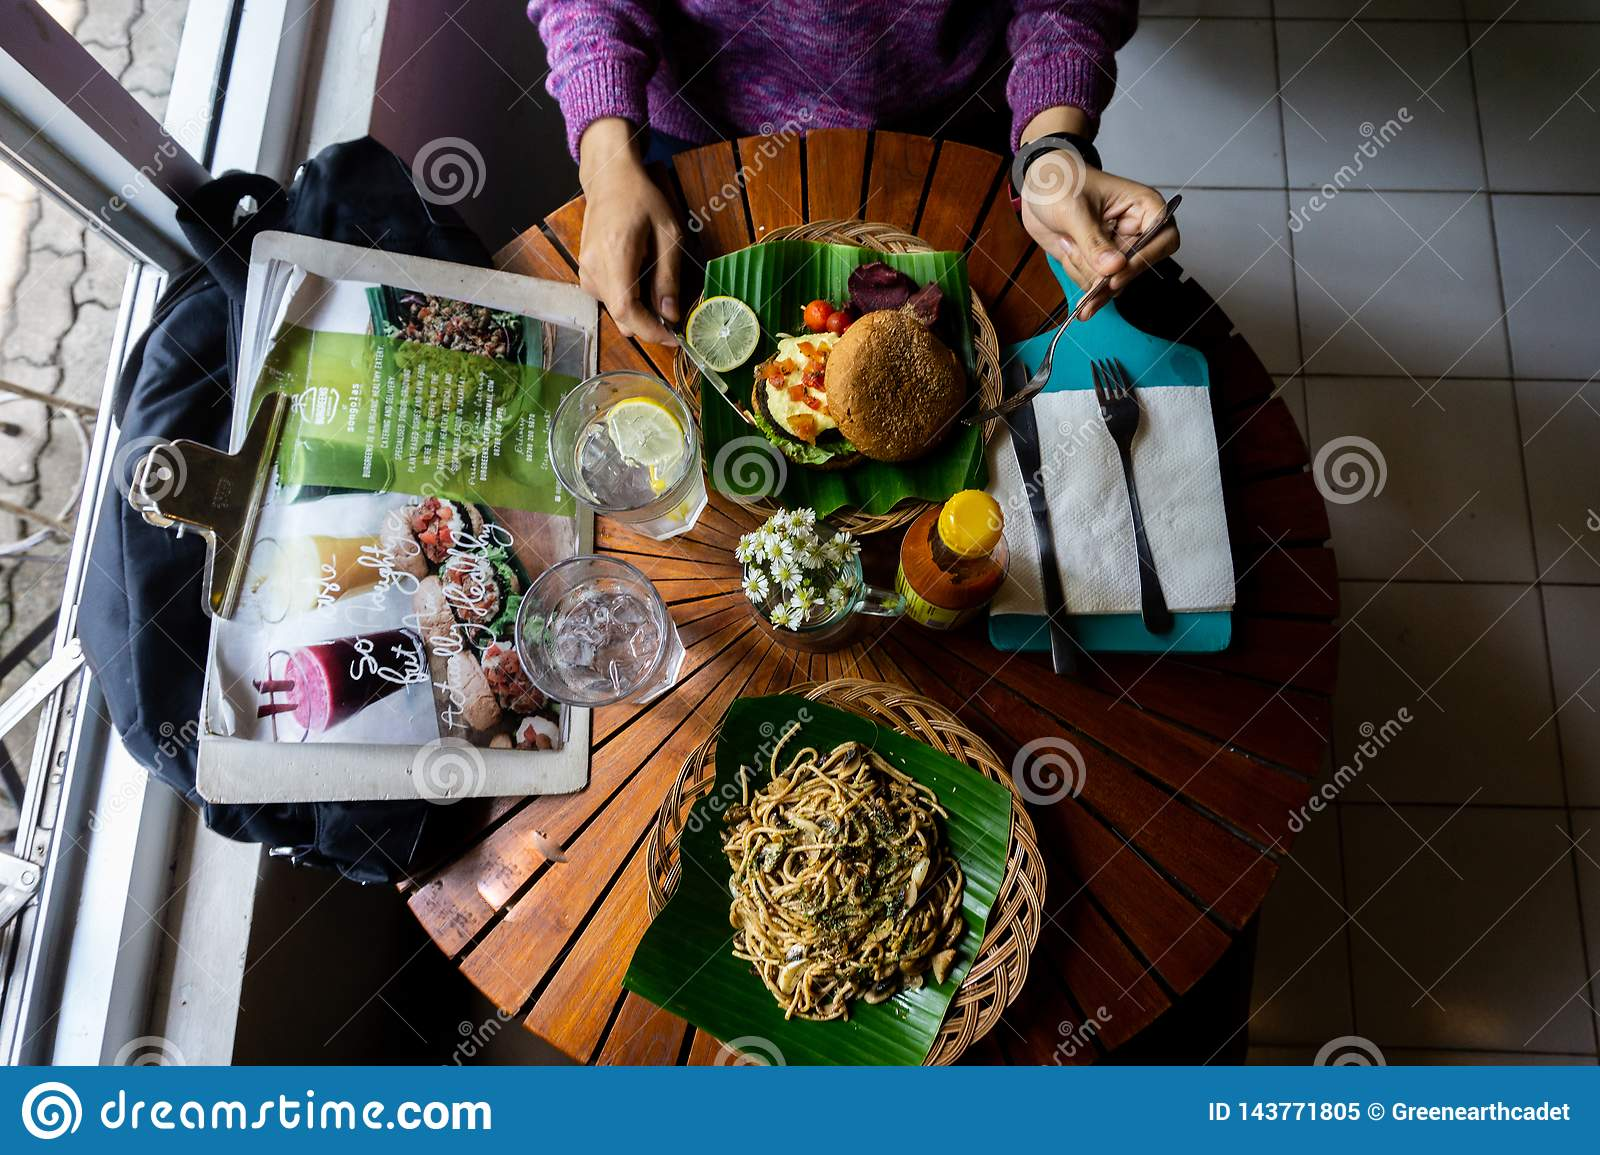 Eating an organic healthy food on the wooden round table. There are spaghetti with black pepper serving on the green banana leaf